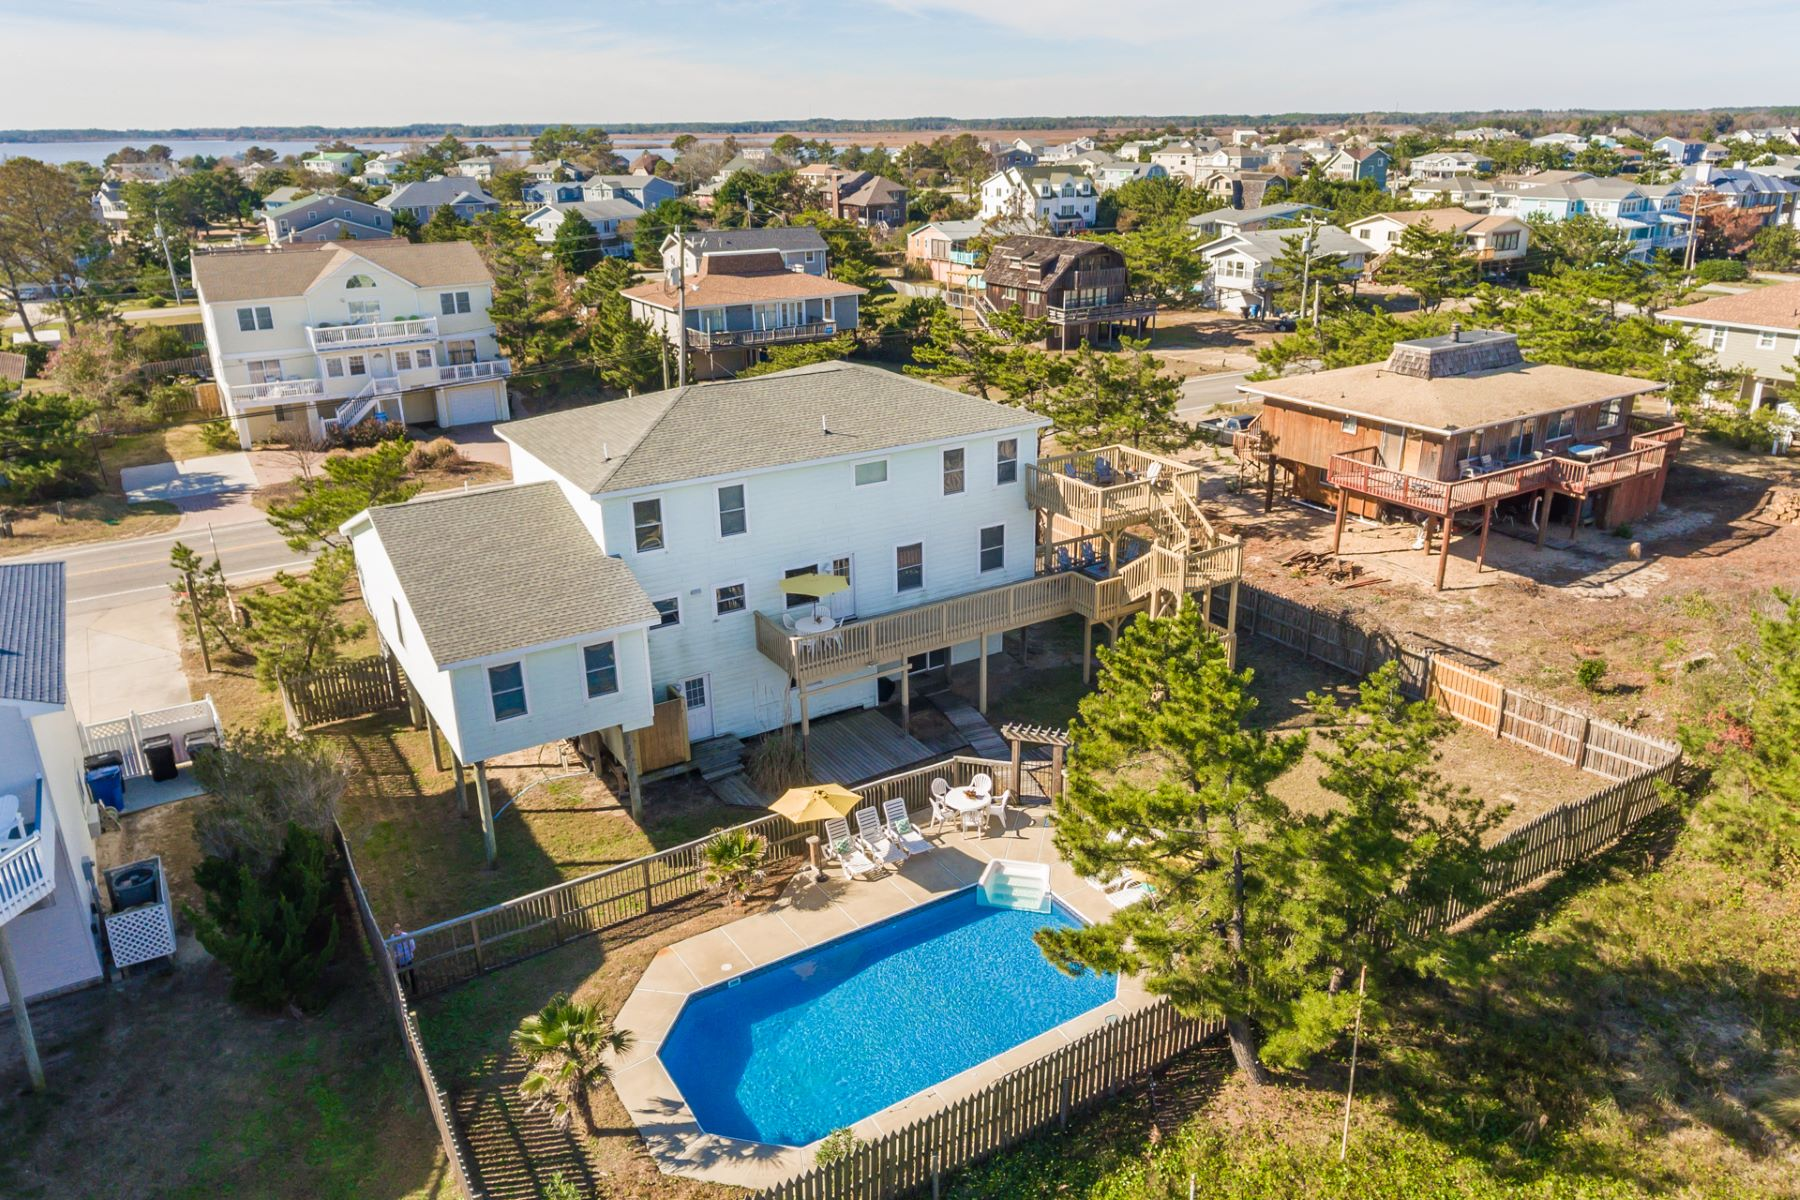 獨棟家庭住宅 為 出售 在 Ocean Key House - Sandbridge Beach 3124 Sandpiper Road, Virginia Beach, 弗吉尼亞州, 23456 美國